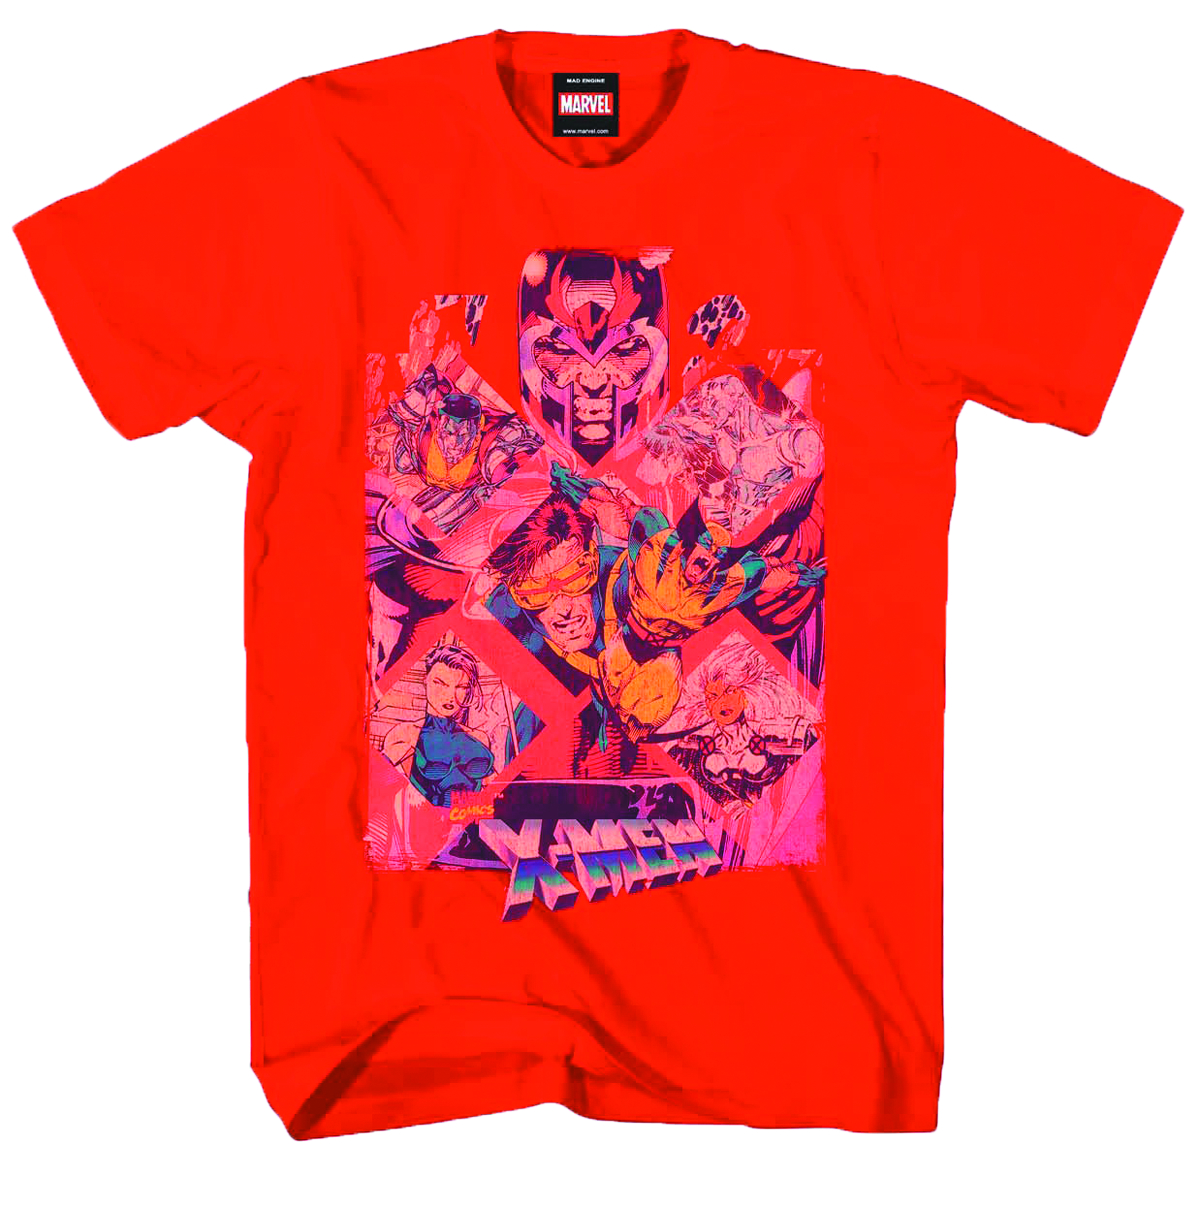 X-MEN ATOMIZED PX RED T/S LG